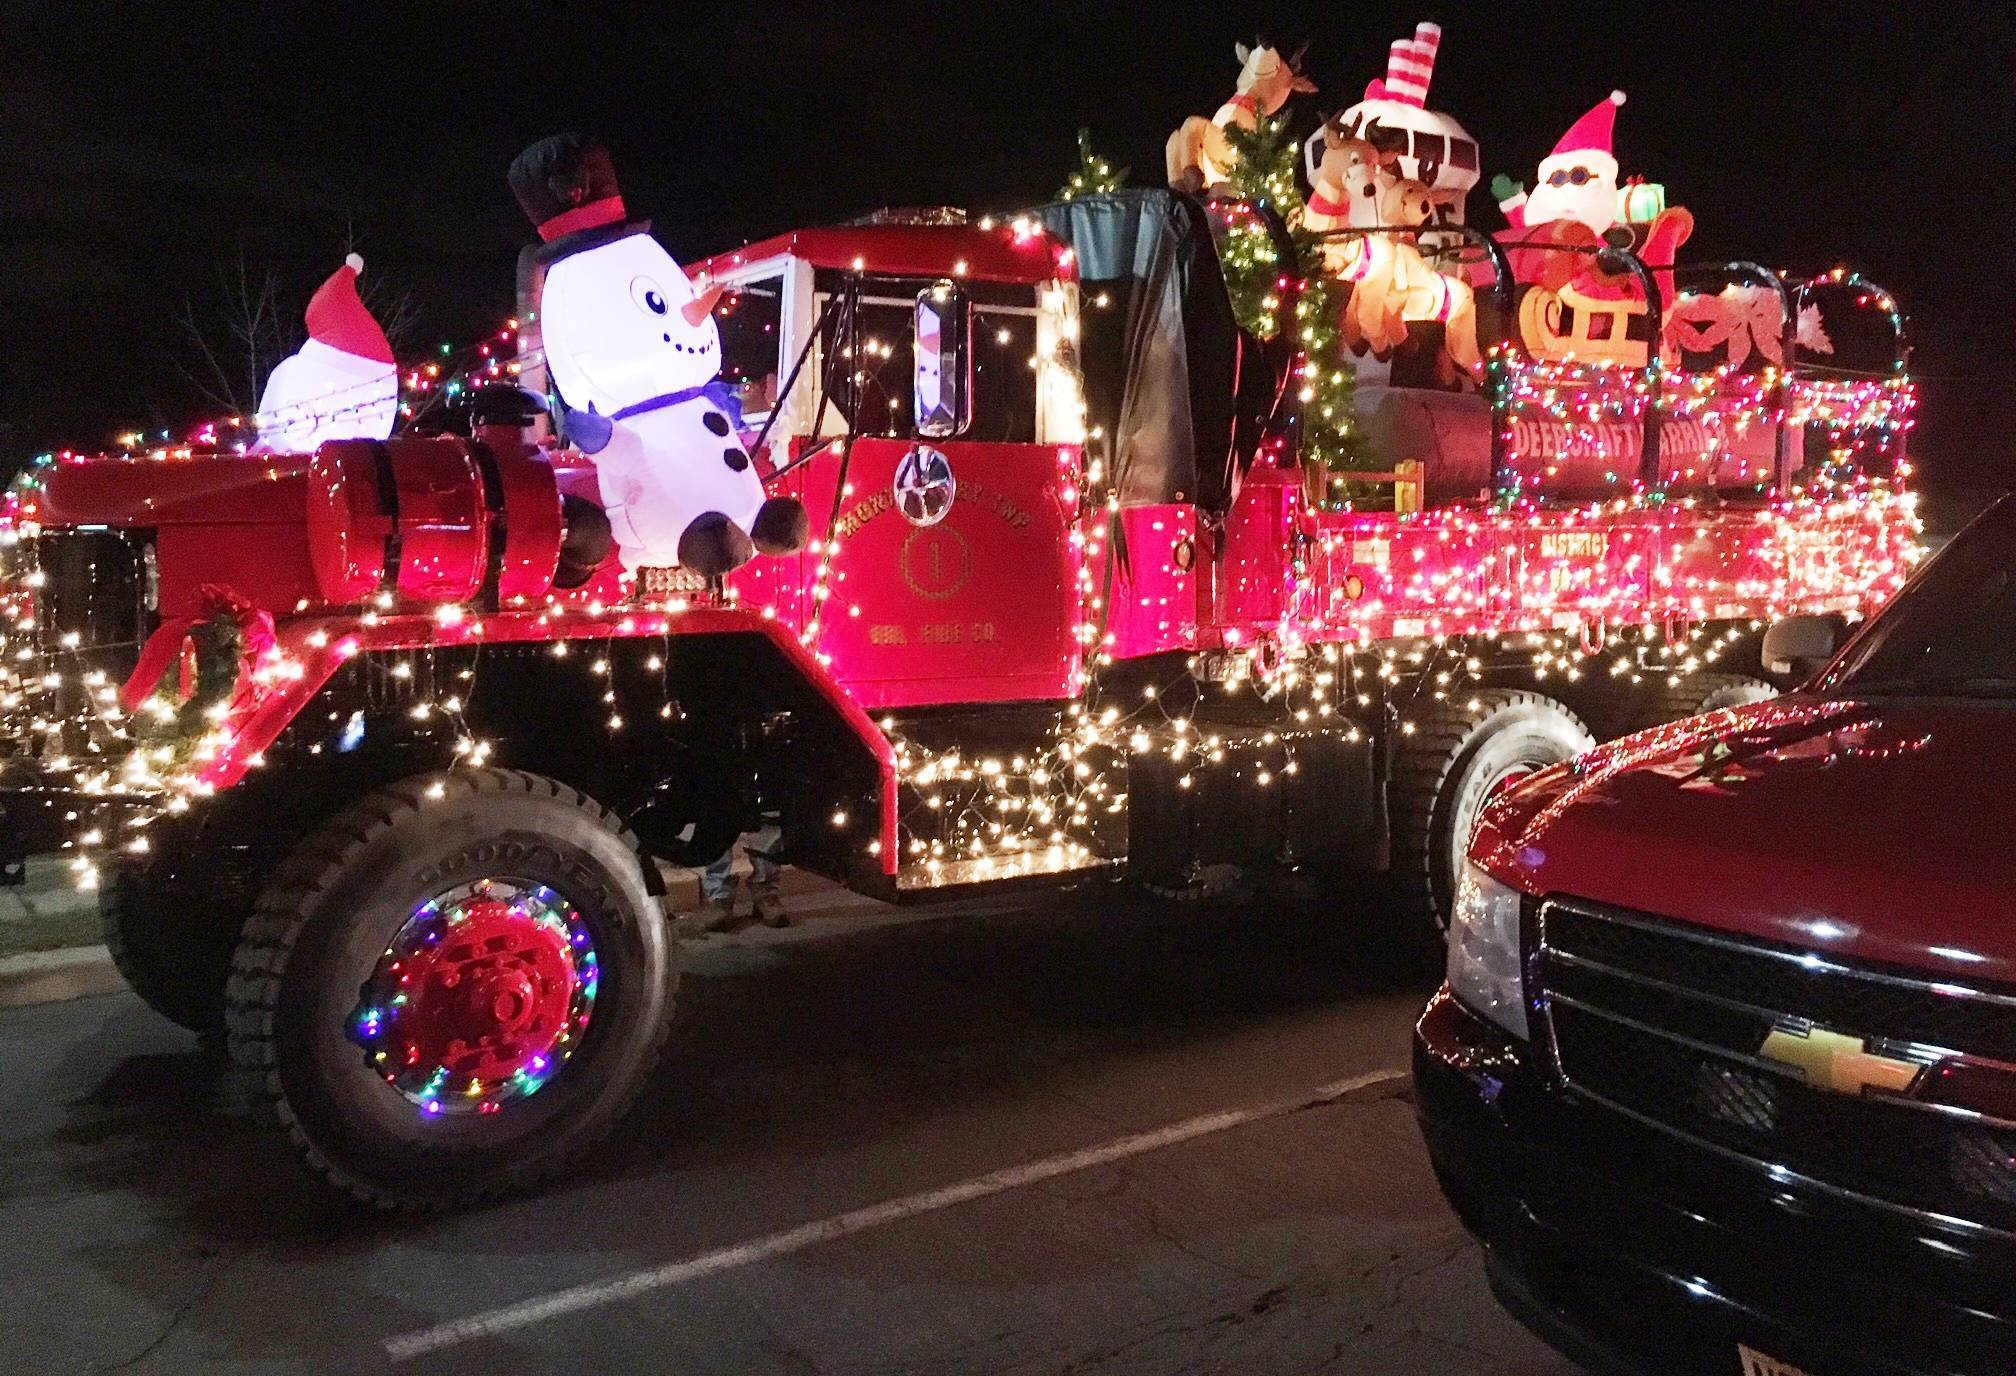 Firefighters Light Up the Town in Somerville's V Annual Holiday ...